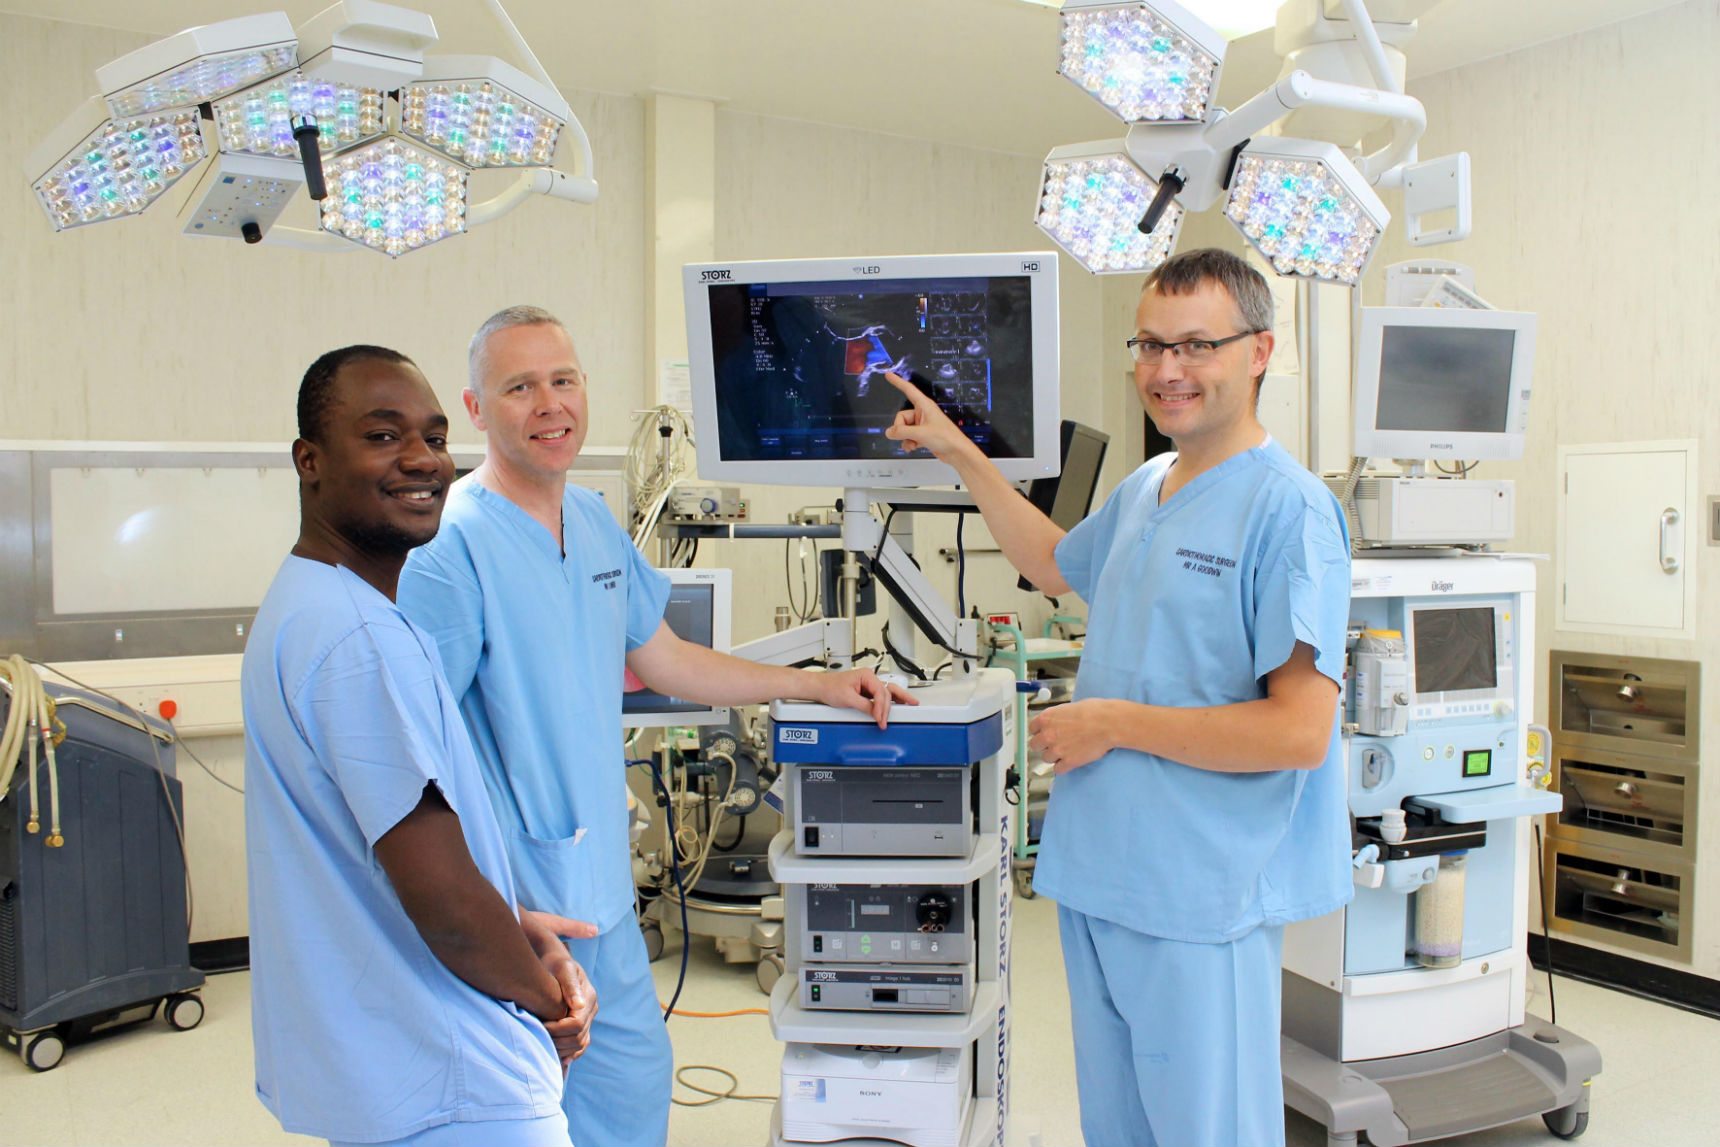 Pictured (L-to-R): Cardiothoracic surgeons Enoch Akowuah, Andrew Owens and Andrew Goodwin.